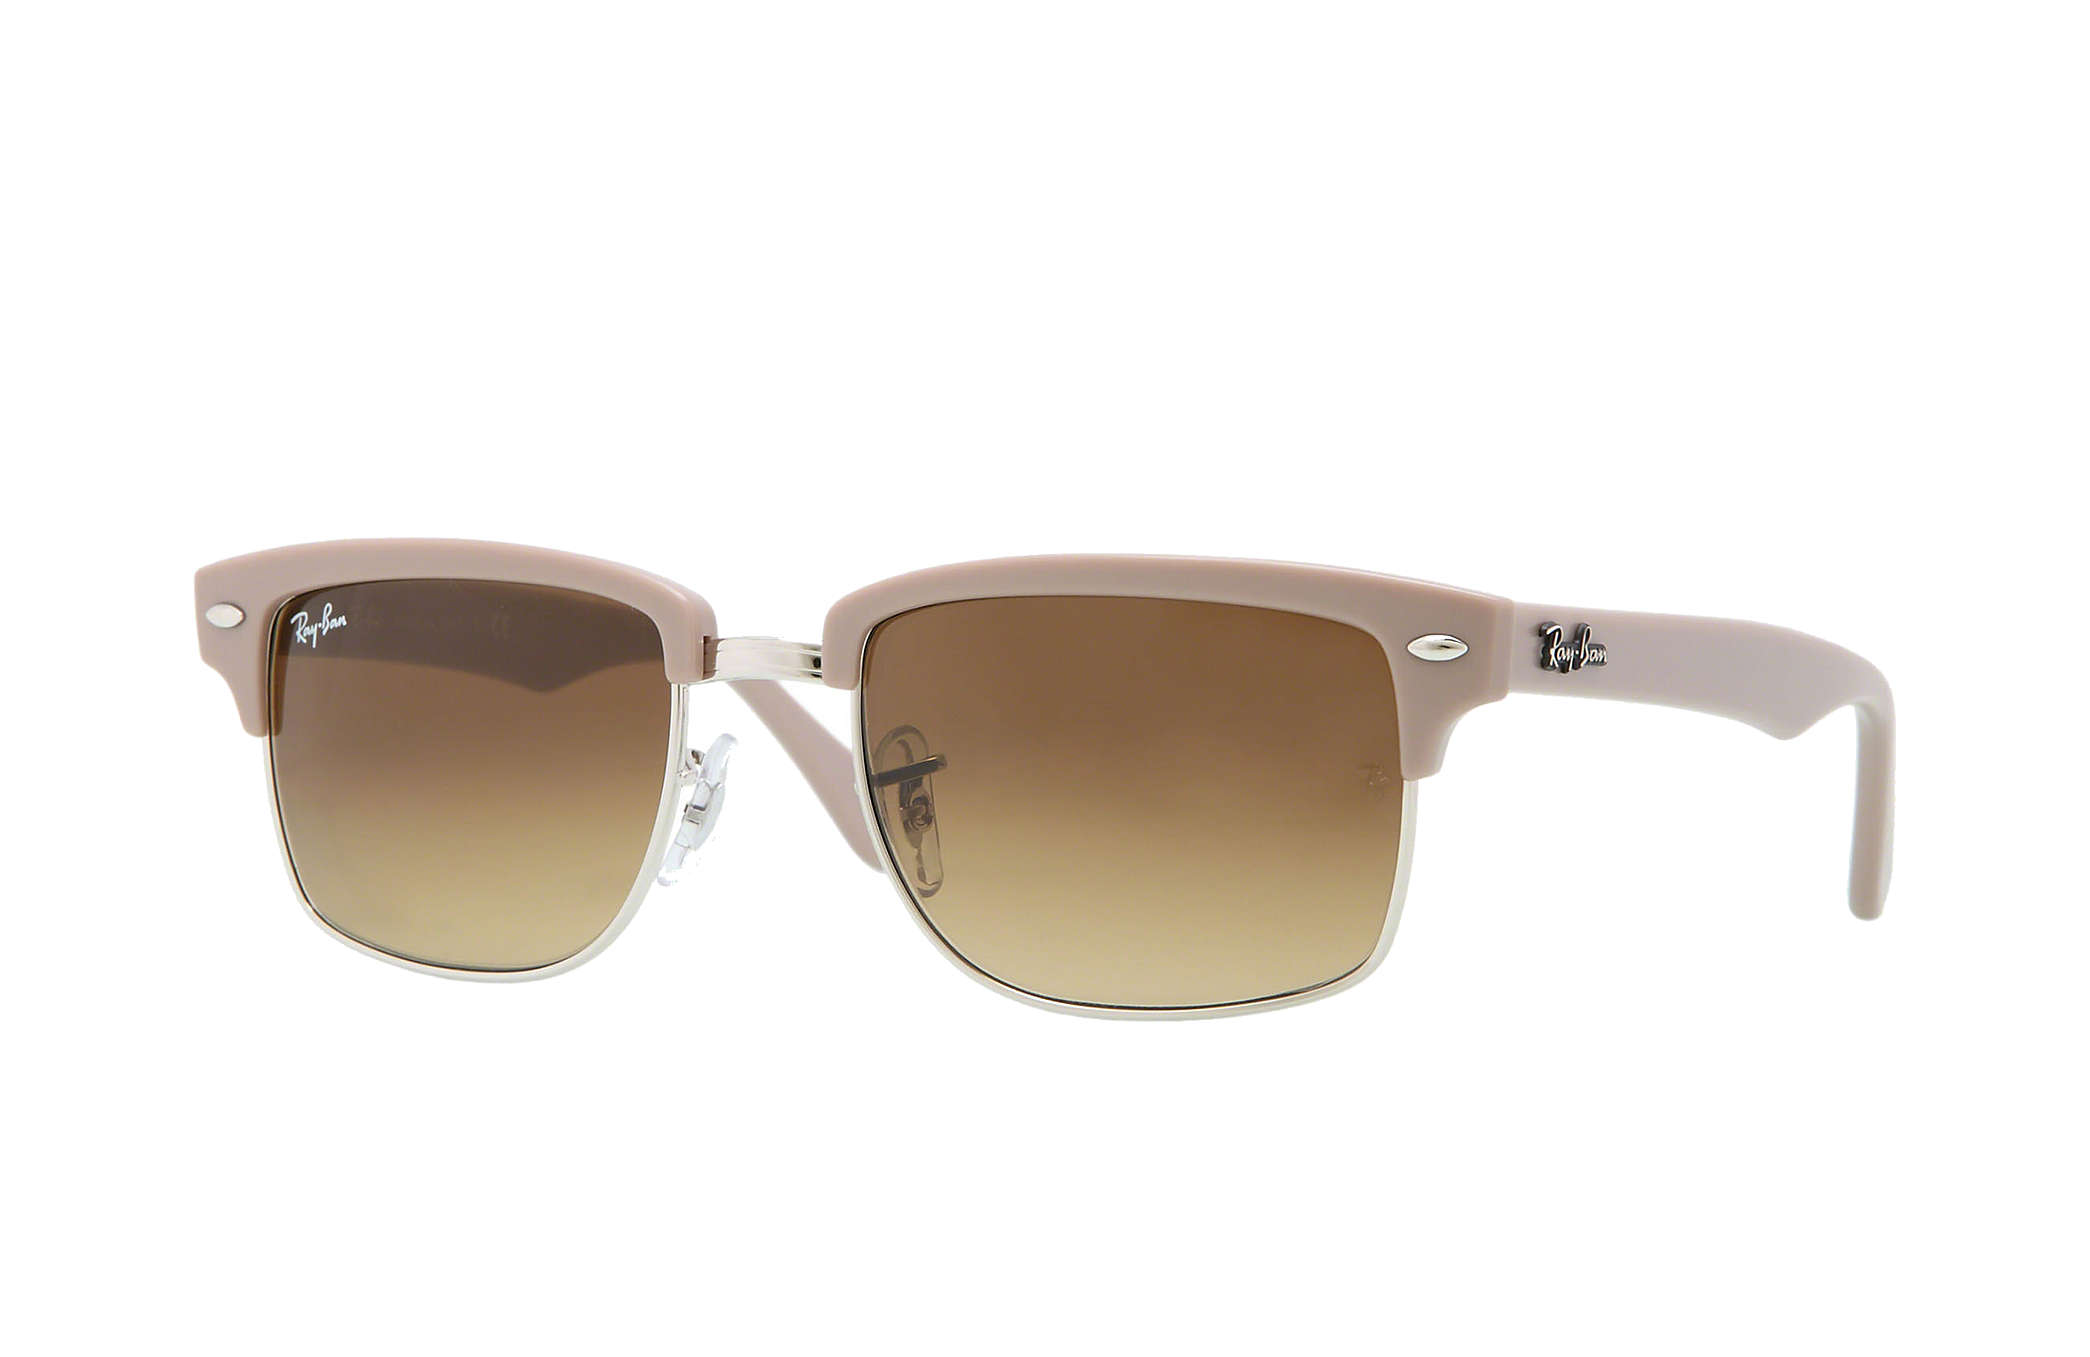 2fc5e441dcd83 ... black polarized lenses rb4190 ray ban 0e24d 65cf7  discount code for ray  ban 0rb4190 clubmaster square bronze copper sun b1b29 48011